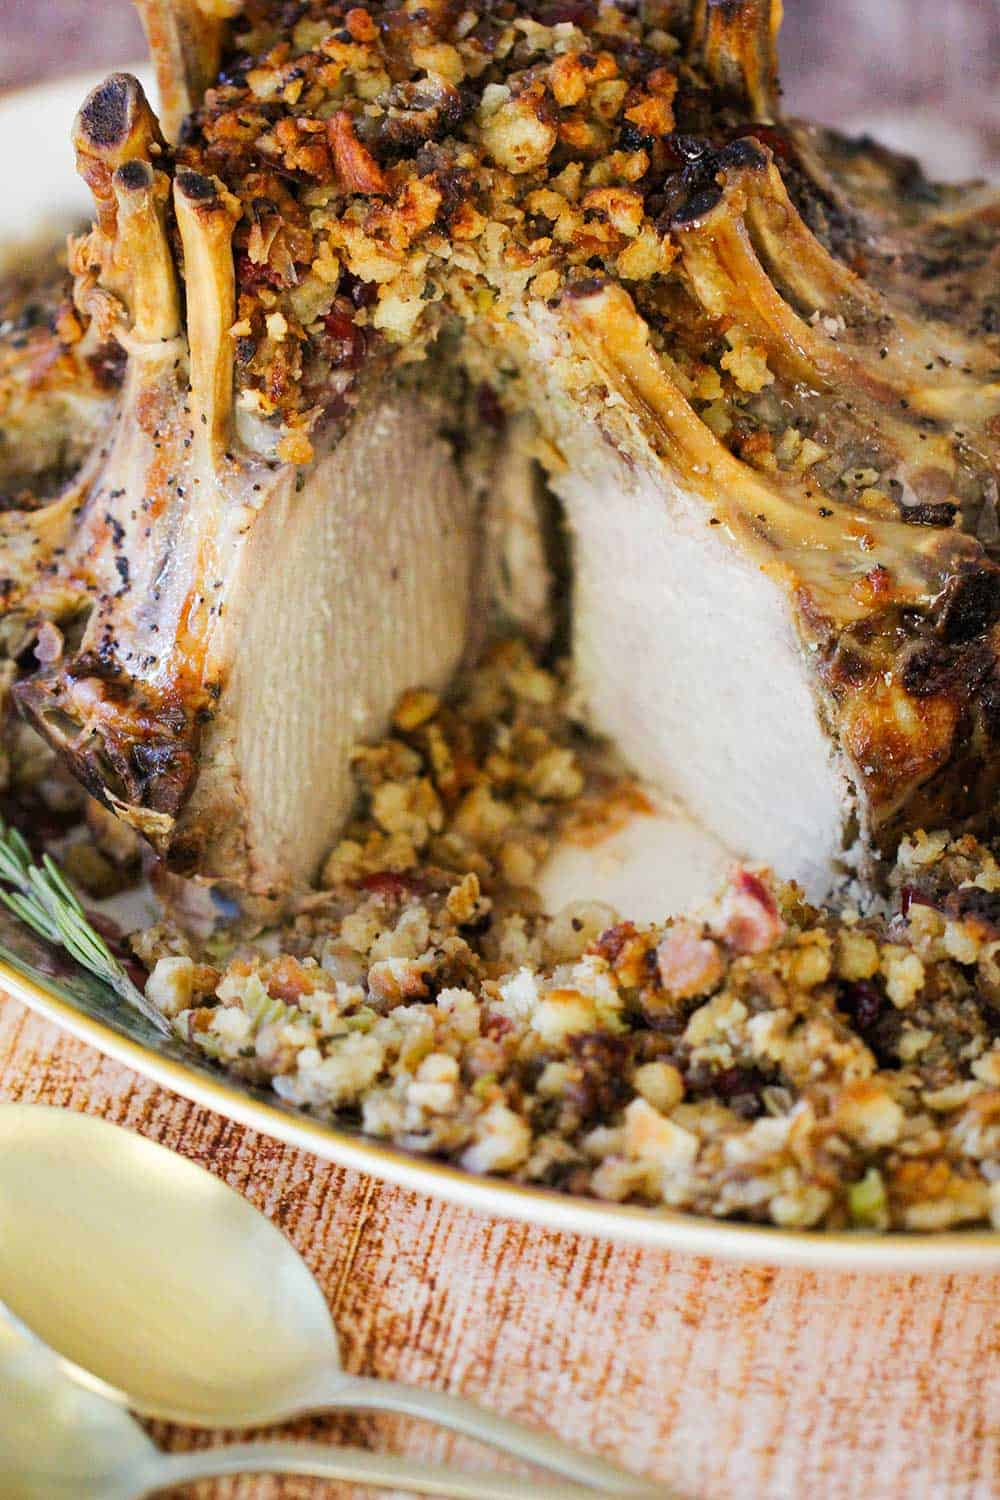 A crown roast of pork on a platter with stuffing.